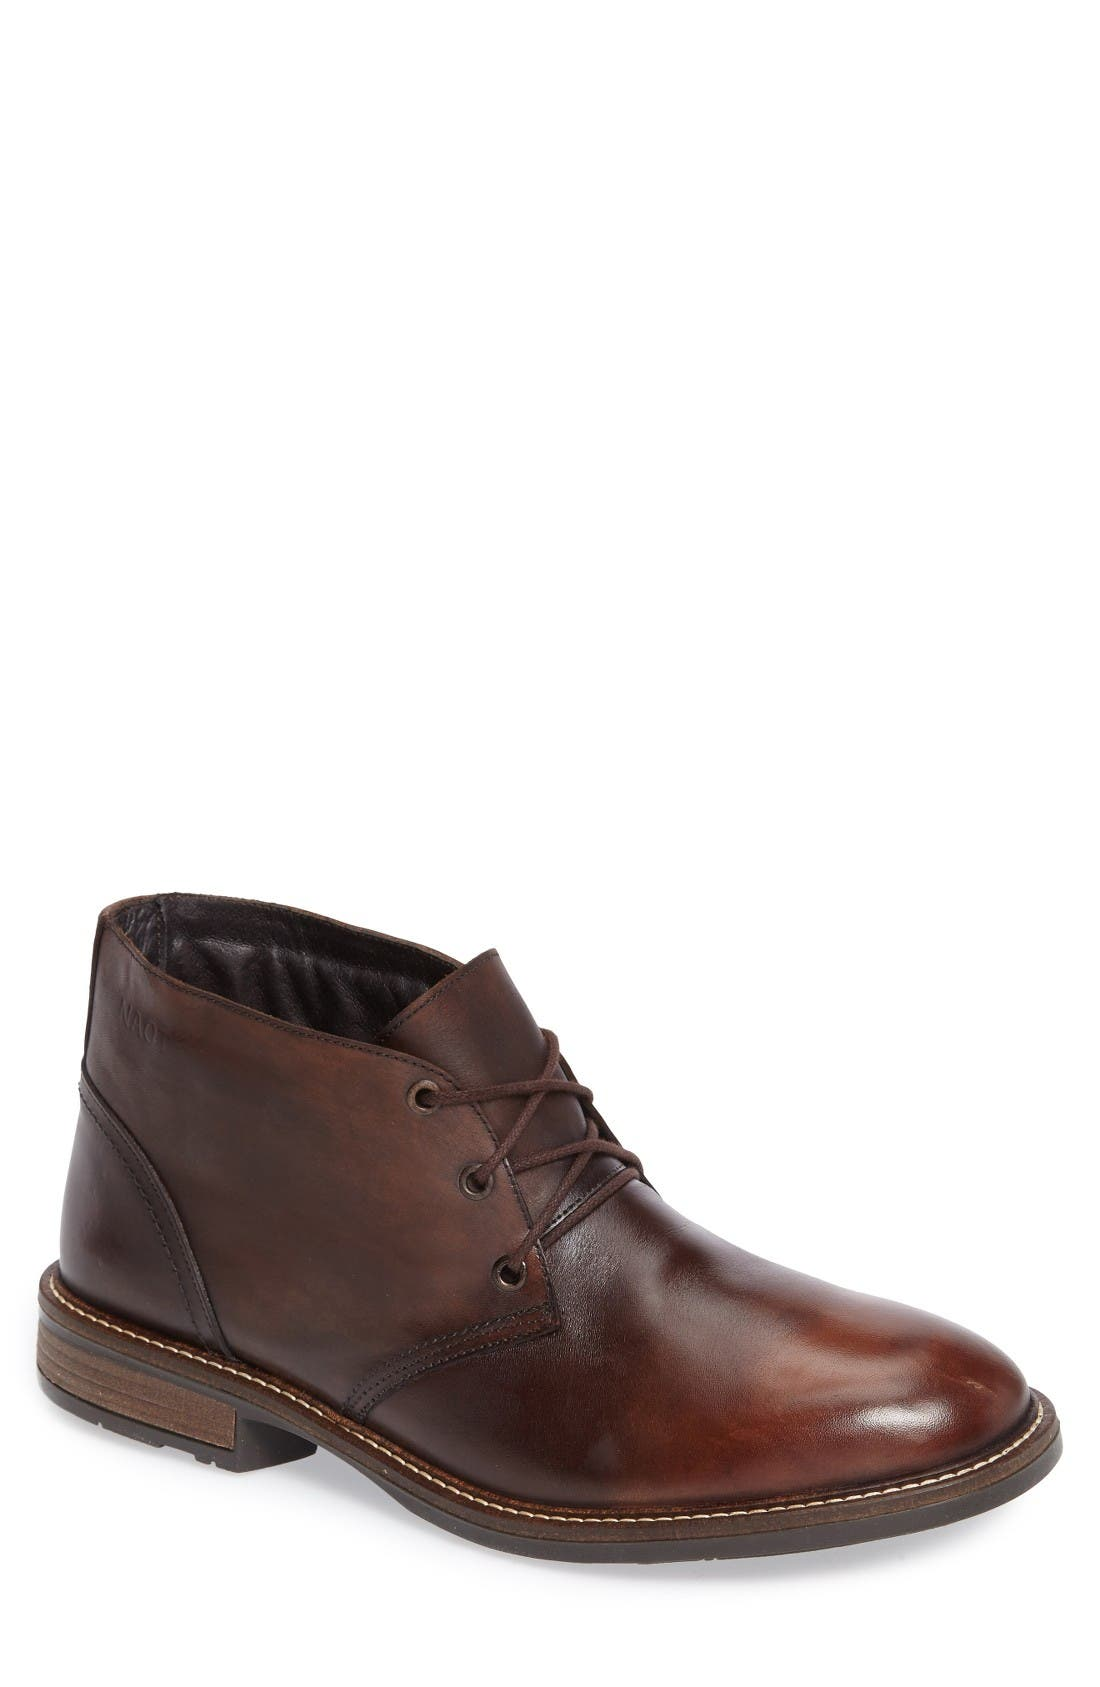 Pilot Chukka Boot,                             Main thumbnail 1, color,                             Brown Gradient Leather